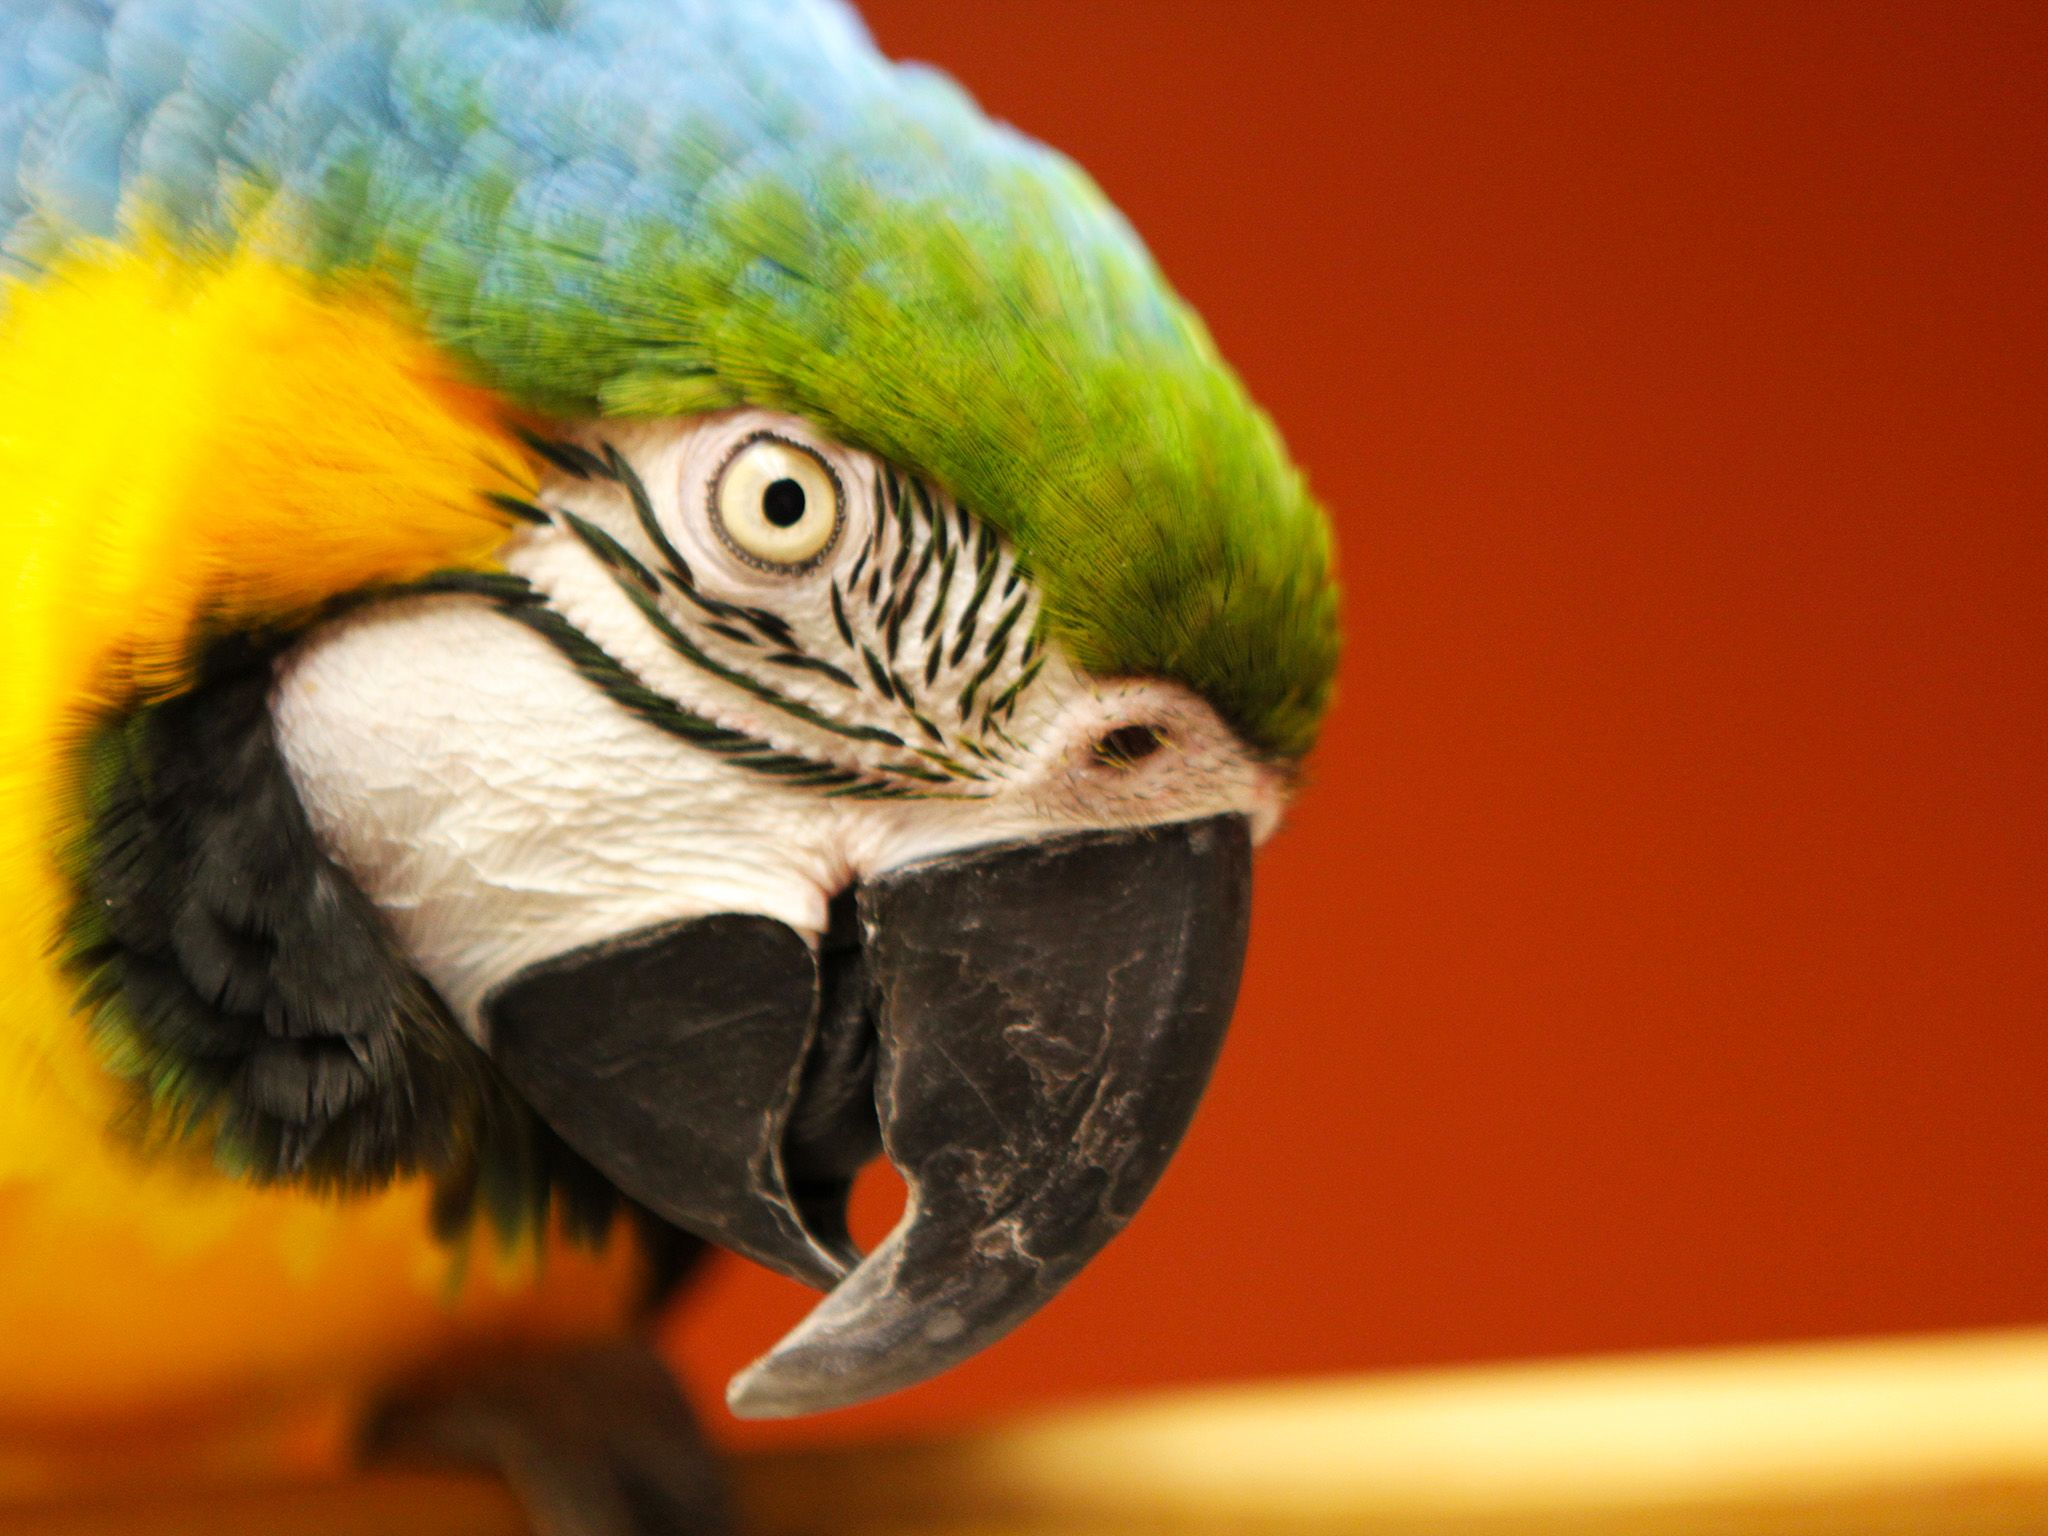 Dr. Kelleher's blue and gold macaw, Xander, sitting on a perch in the treatment room. This image ... [Photo of the day - October, 2014]